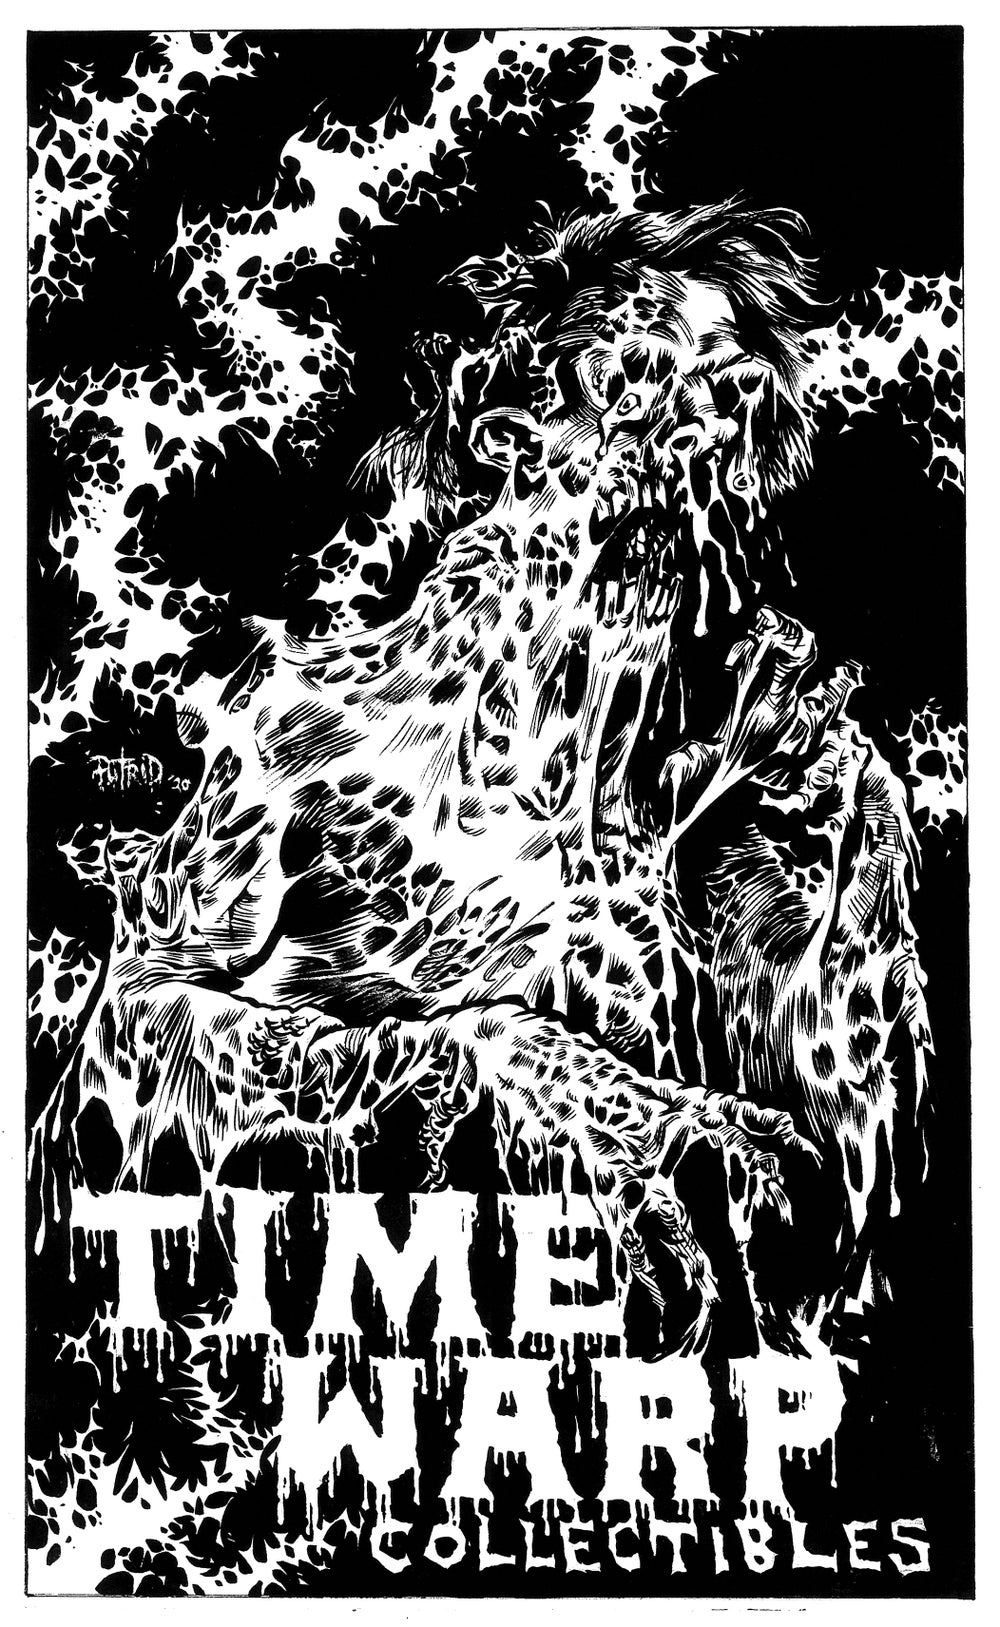 """2020 BLACK FRIDAY EXCLUSIVE! """"FACE MELTER"""" 11 x 17"""" Hand Numbered Print by PUTRID!"""